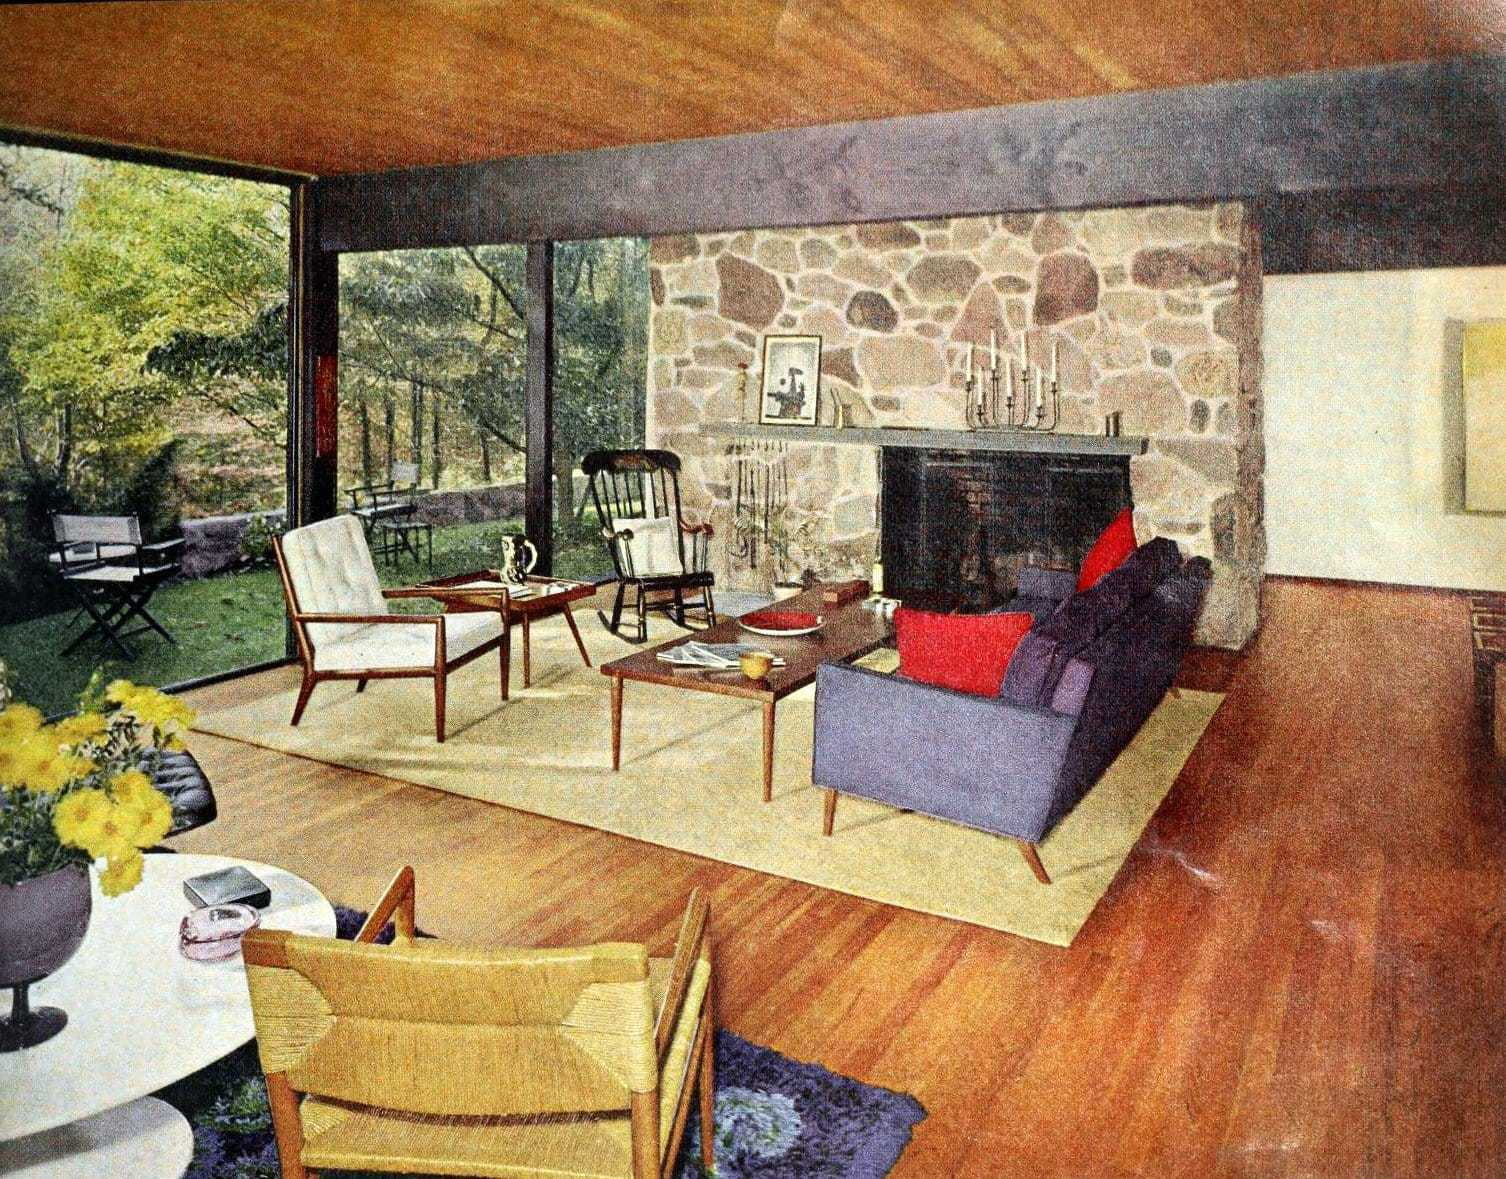 Open-plan midcentury modern living room decor and furniture (1962)